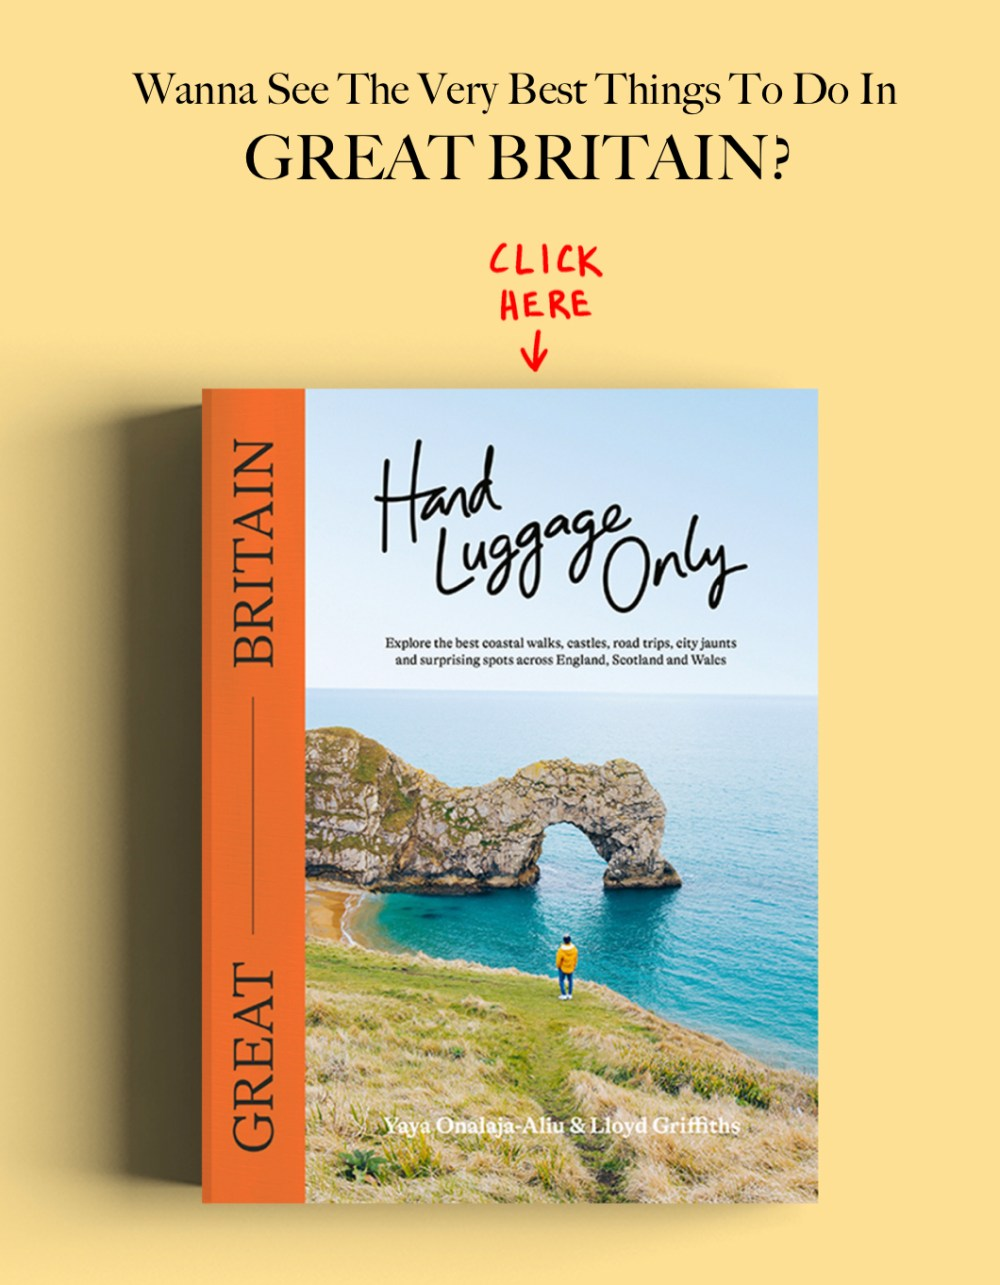 Hand luggage only Great Britain Travel book Banner advertising